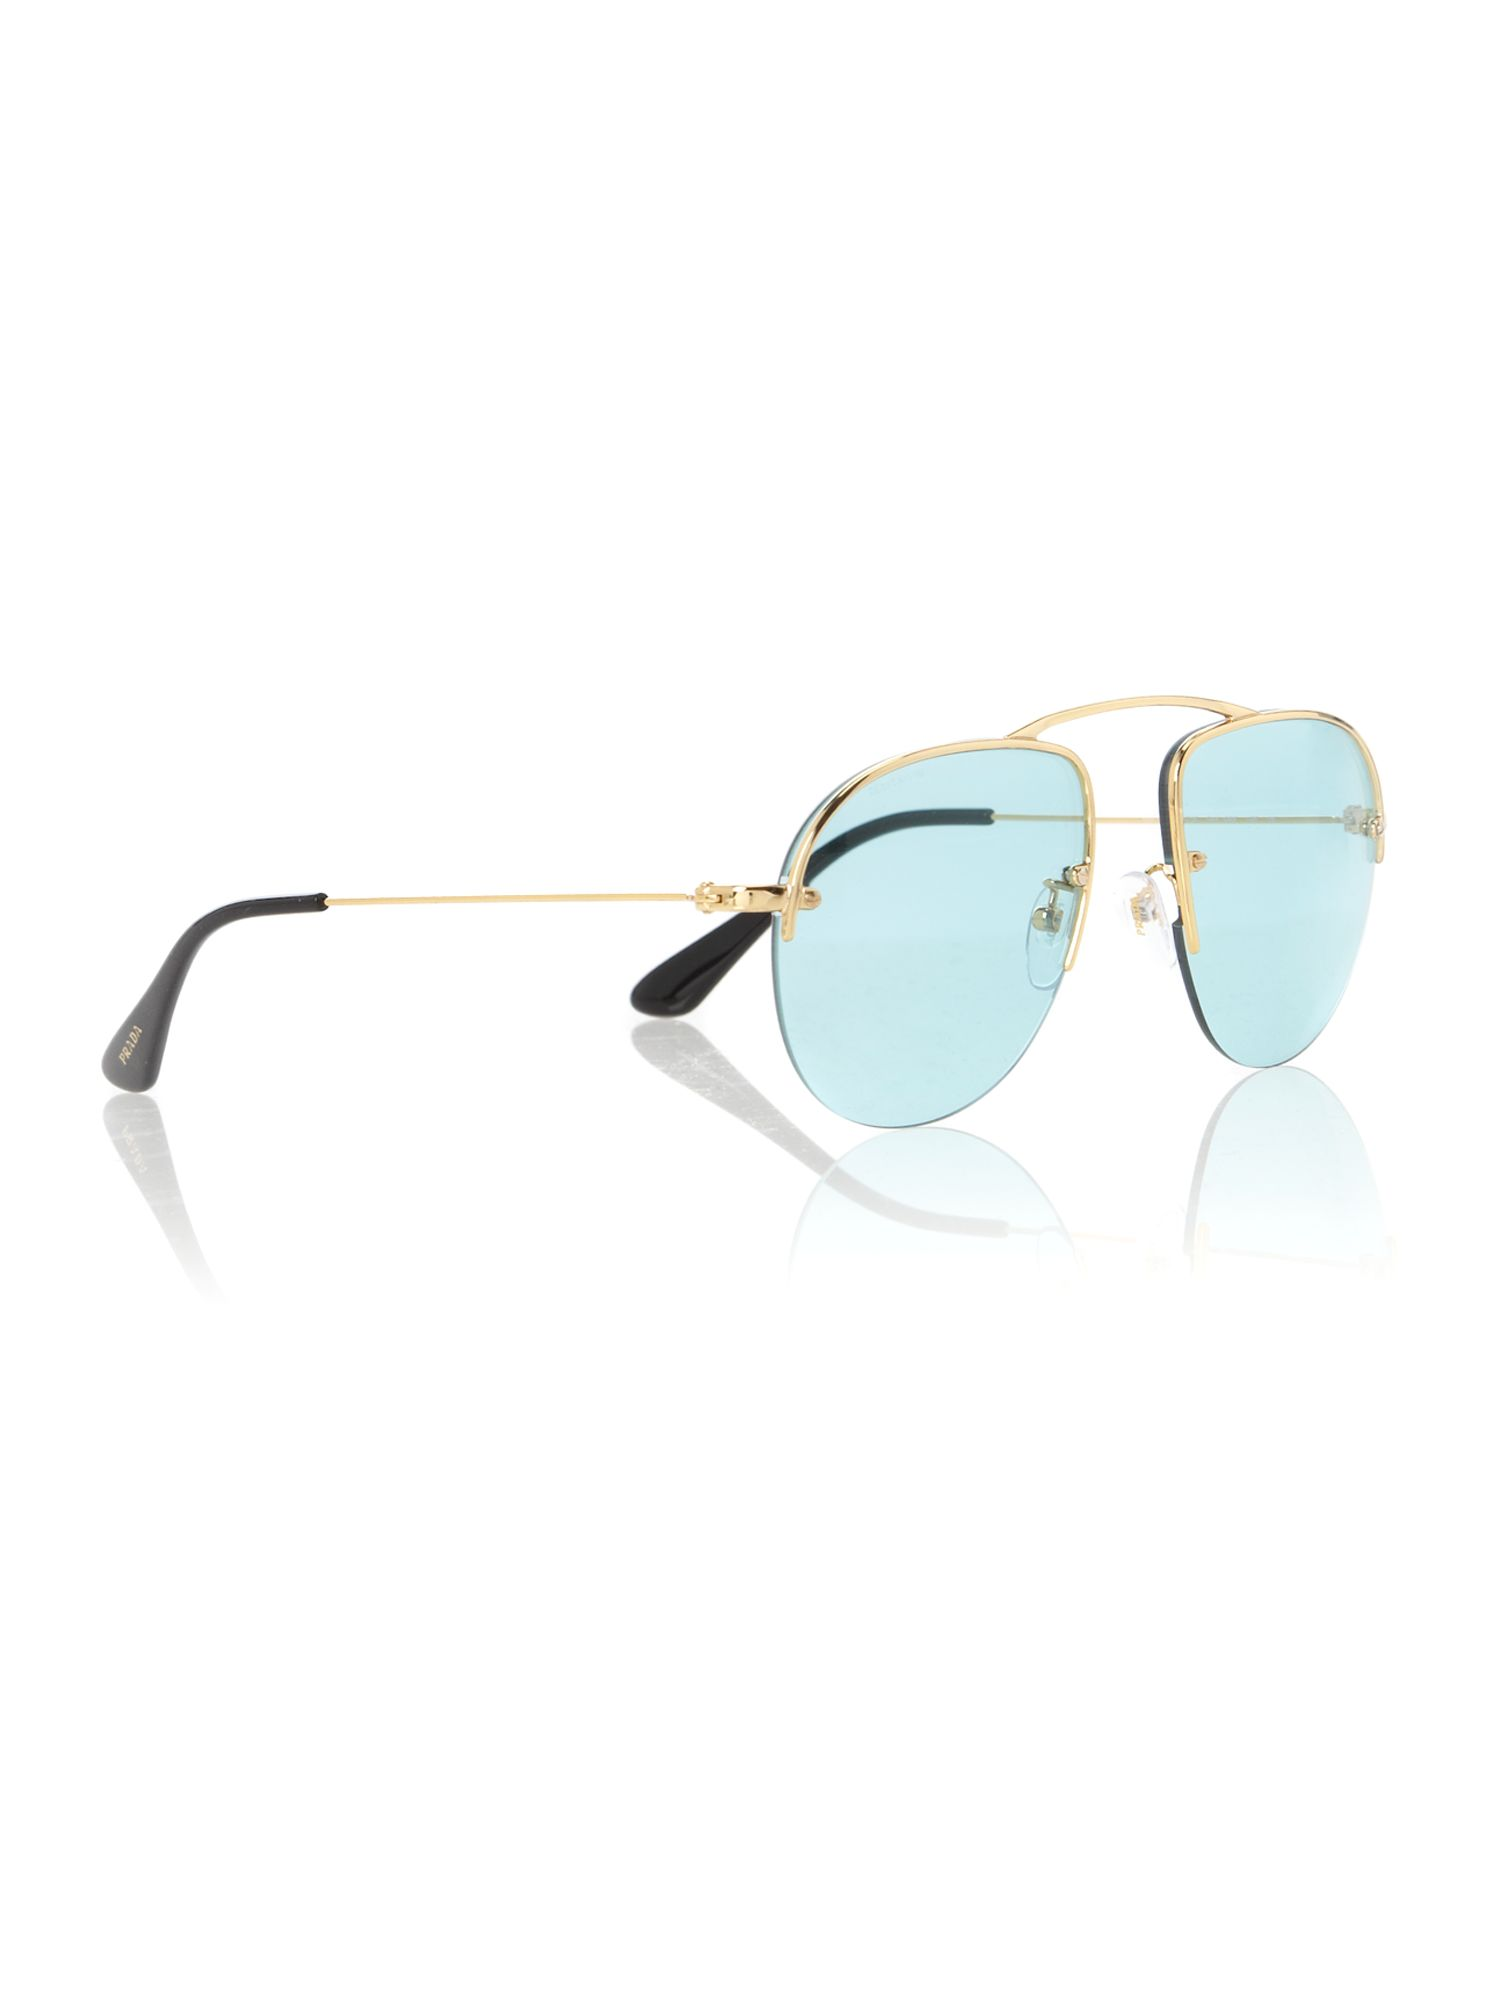 Mens PR58OS Parallel Universes Gold Sunglasses